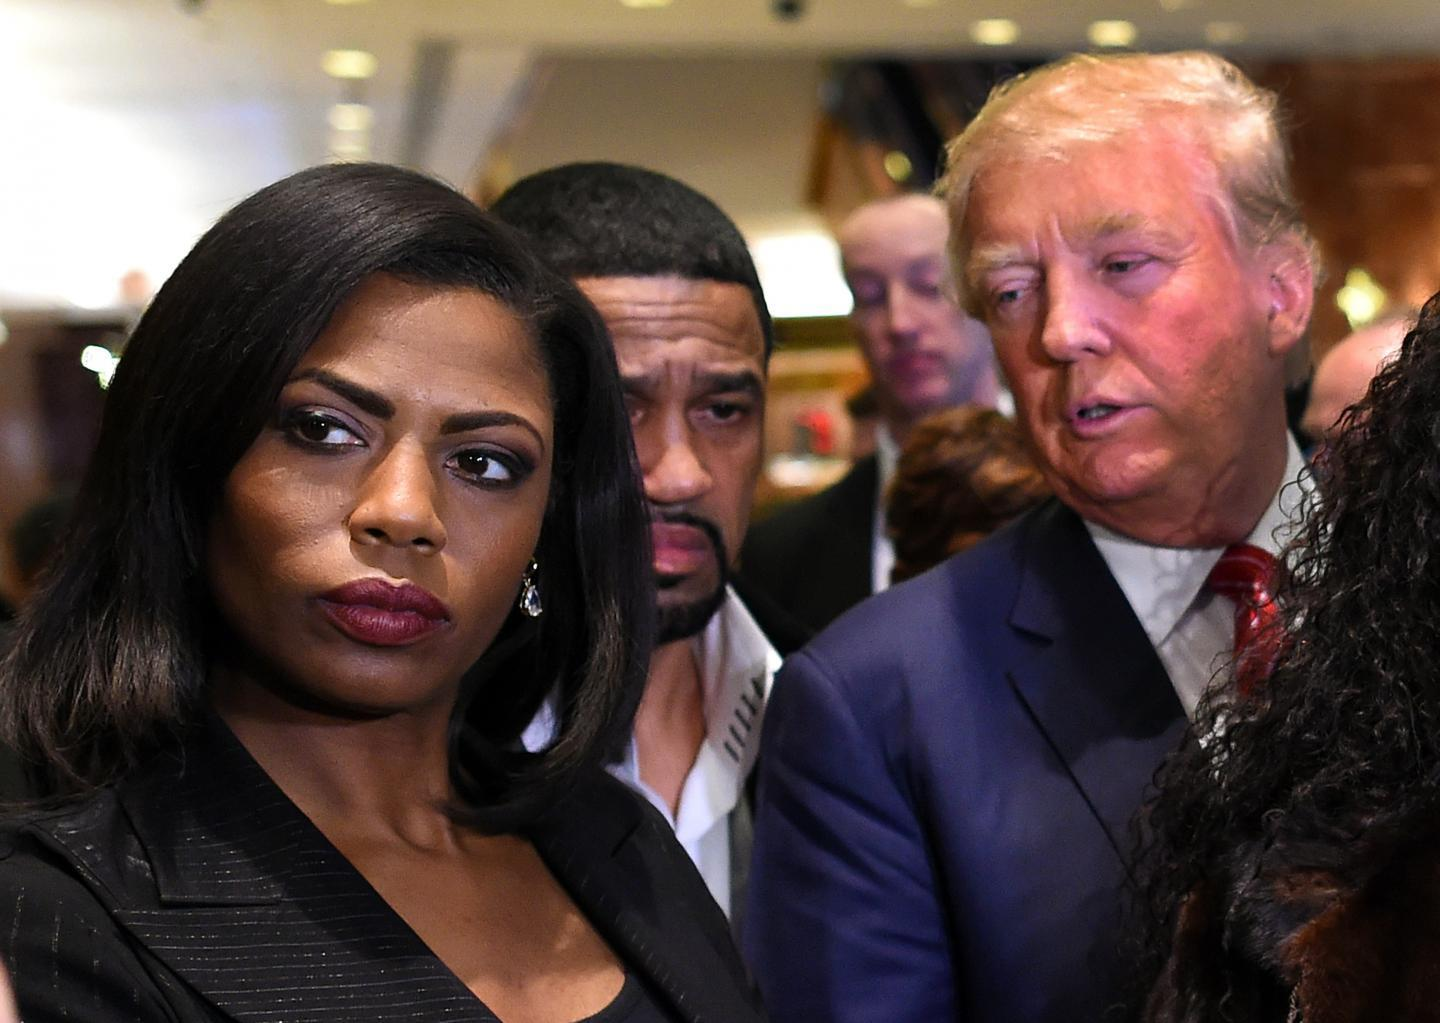 Trump vs Omarosa: Why is a woman who does something disagreeable called 'crazy'? | Opinion https://t.co/Z5z1cmo1j1 https://t.co/aiSmdNJHjJ